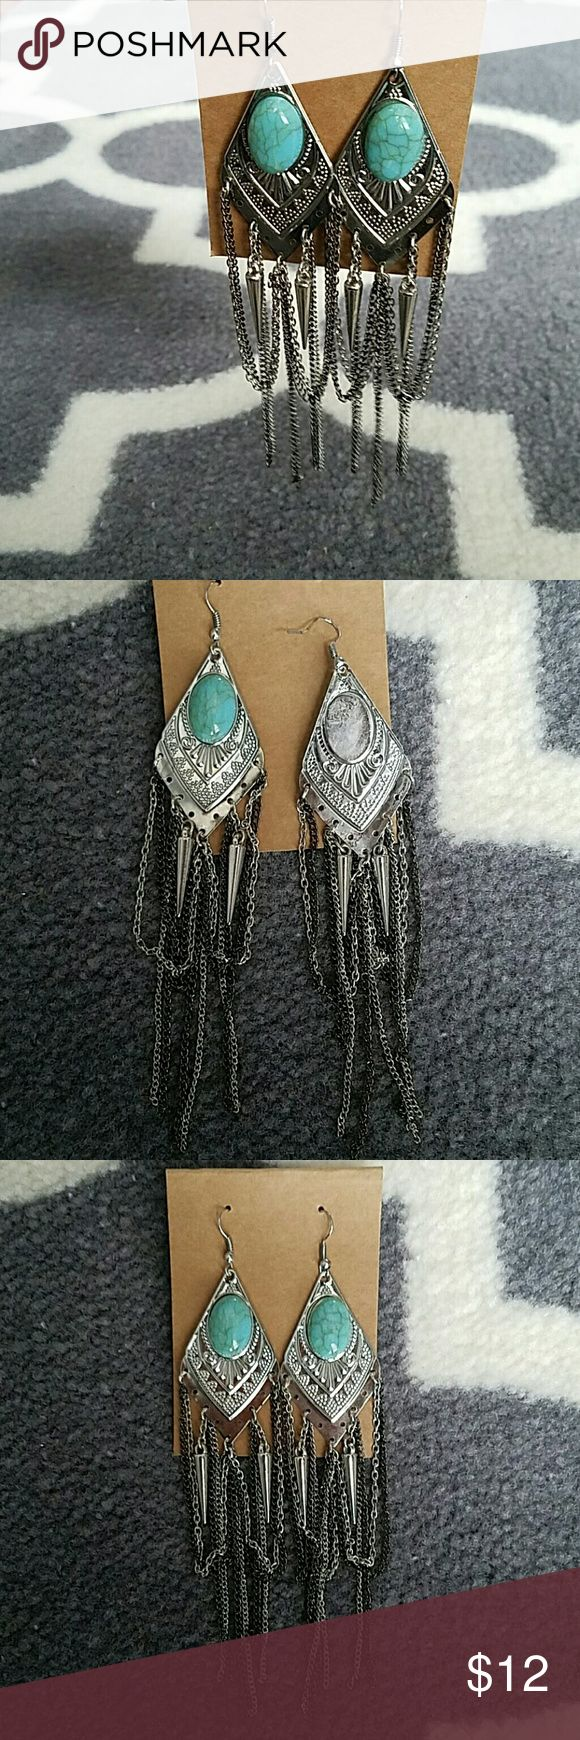 New boho turquoise dangle earrings Earing set with turquoise stone on silver backing. These are a statement! See last picture for measurement. Bundle and get 15% off! Jewelry Earrings